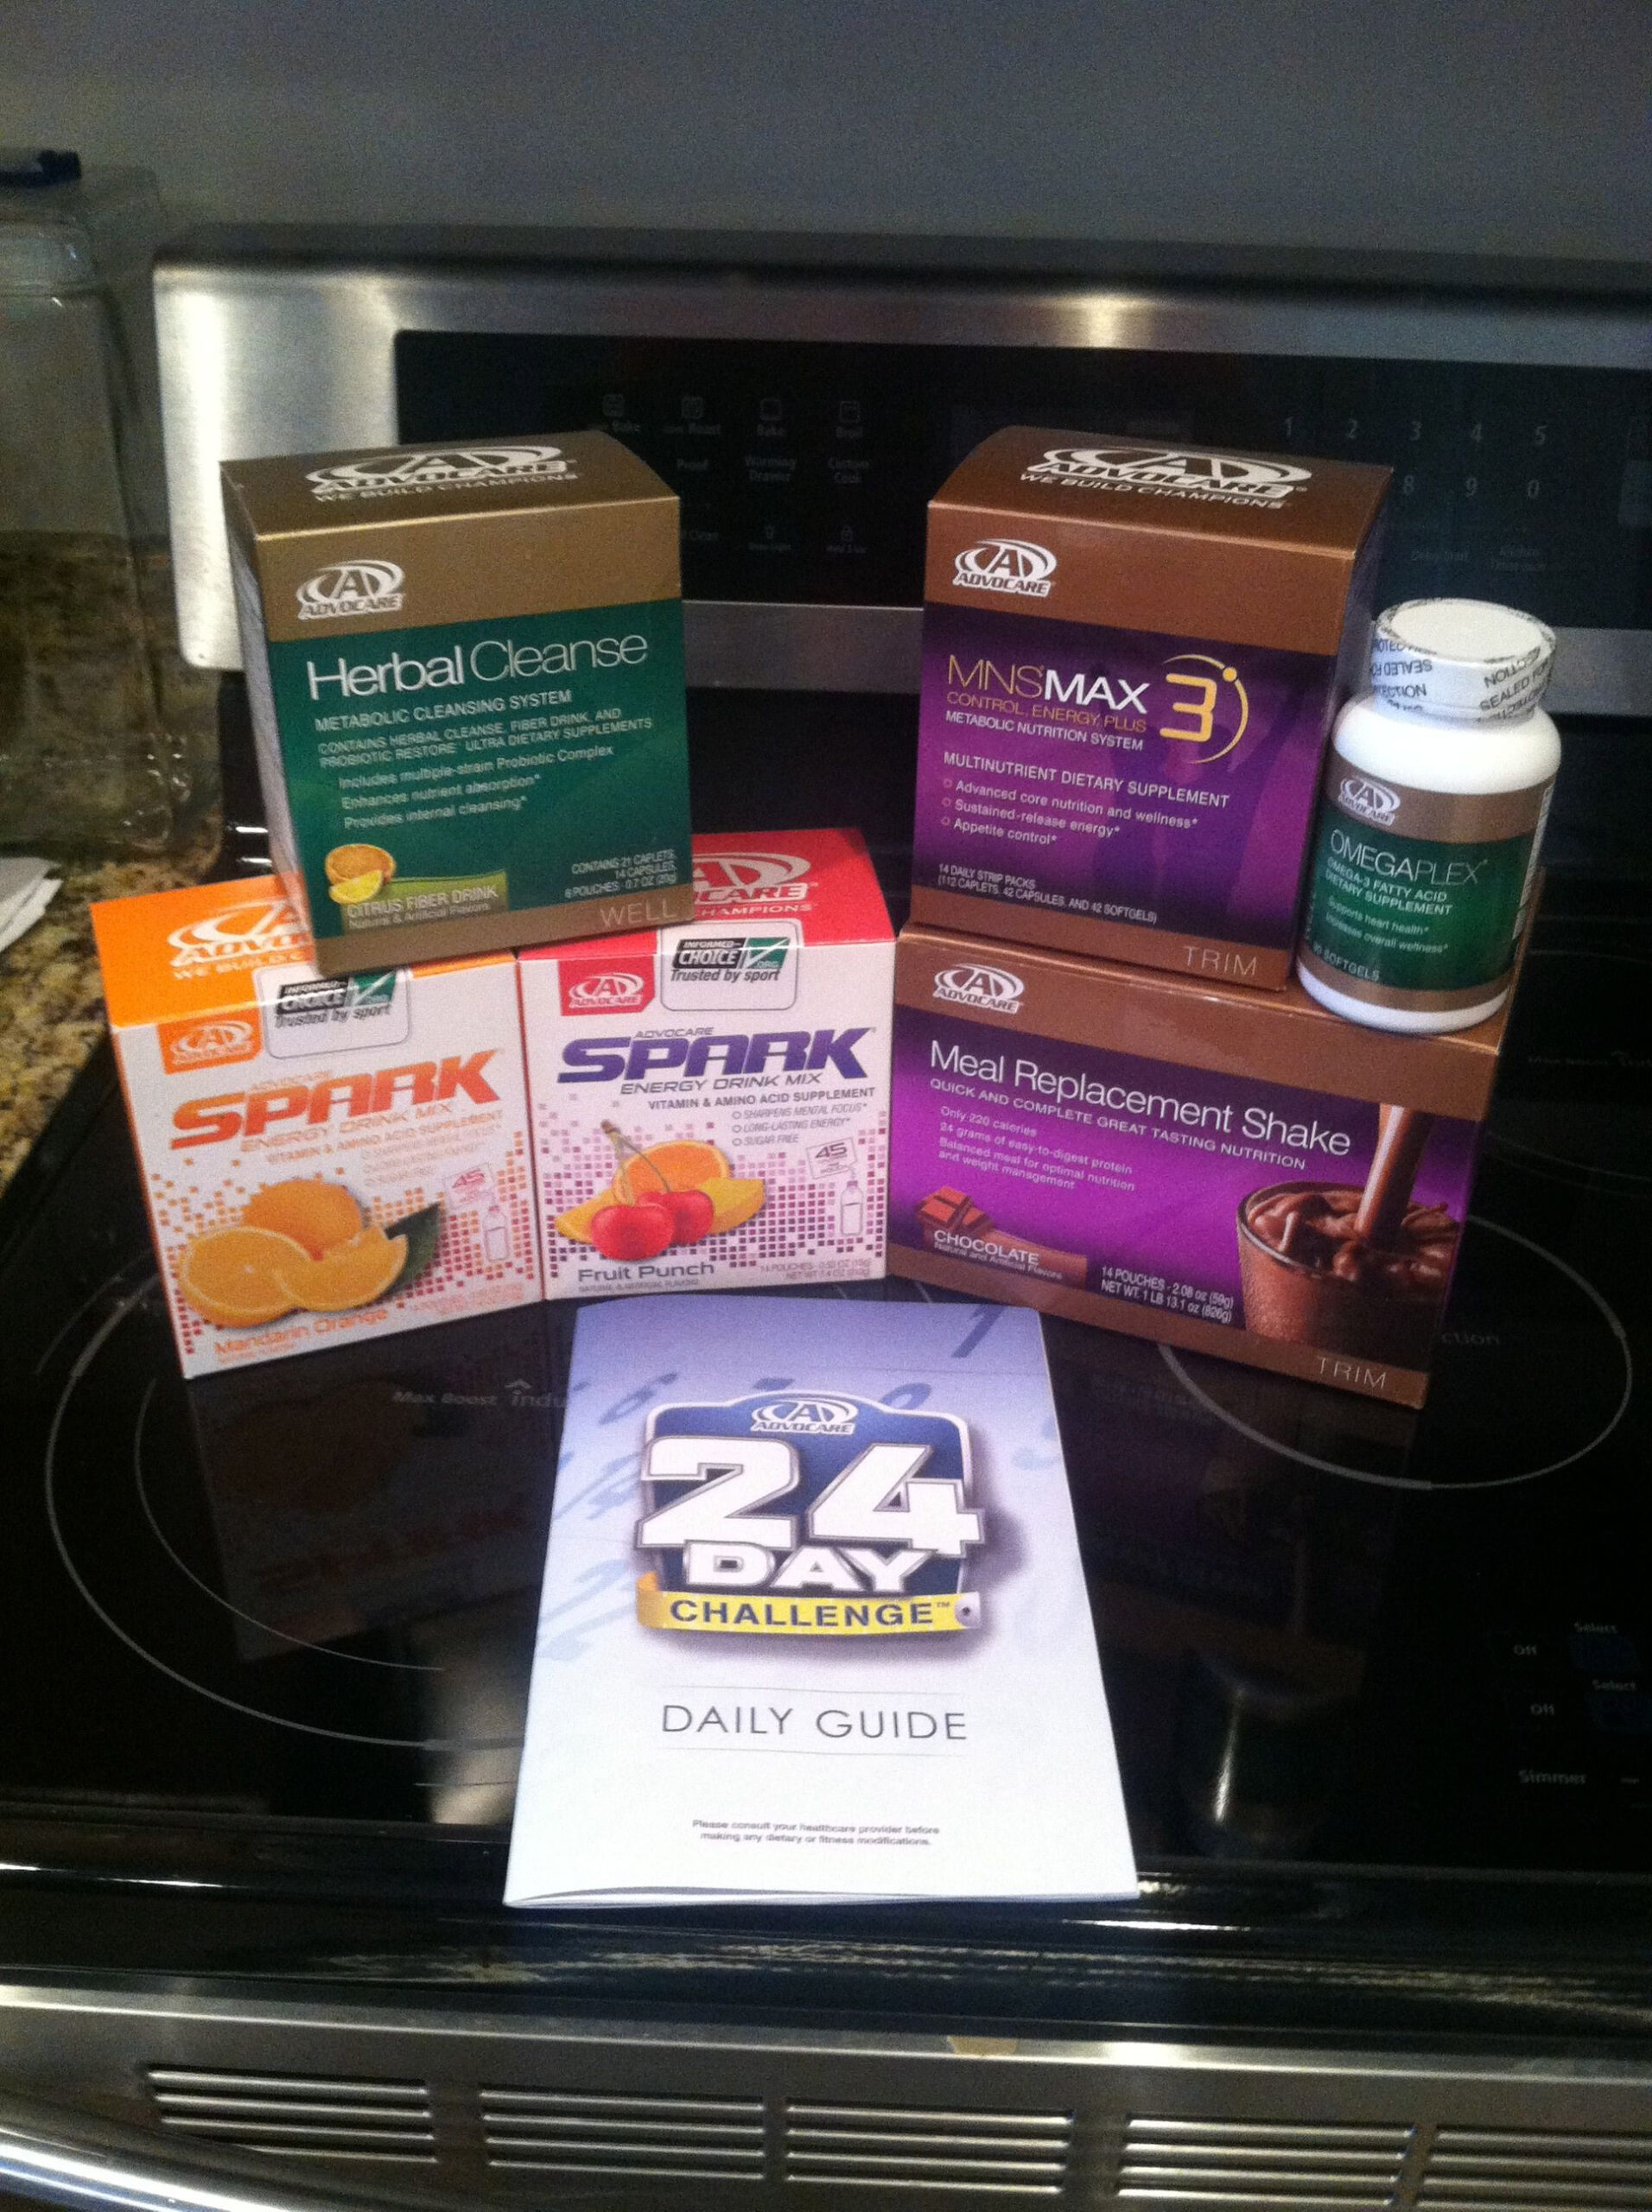 Pin On Advocare 24 Day Challenge pertaining to Advocare 24 Day Challenge Booklet